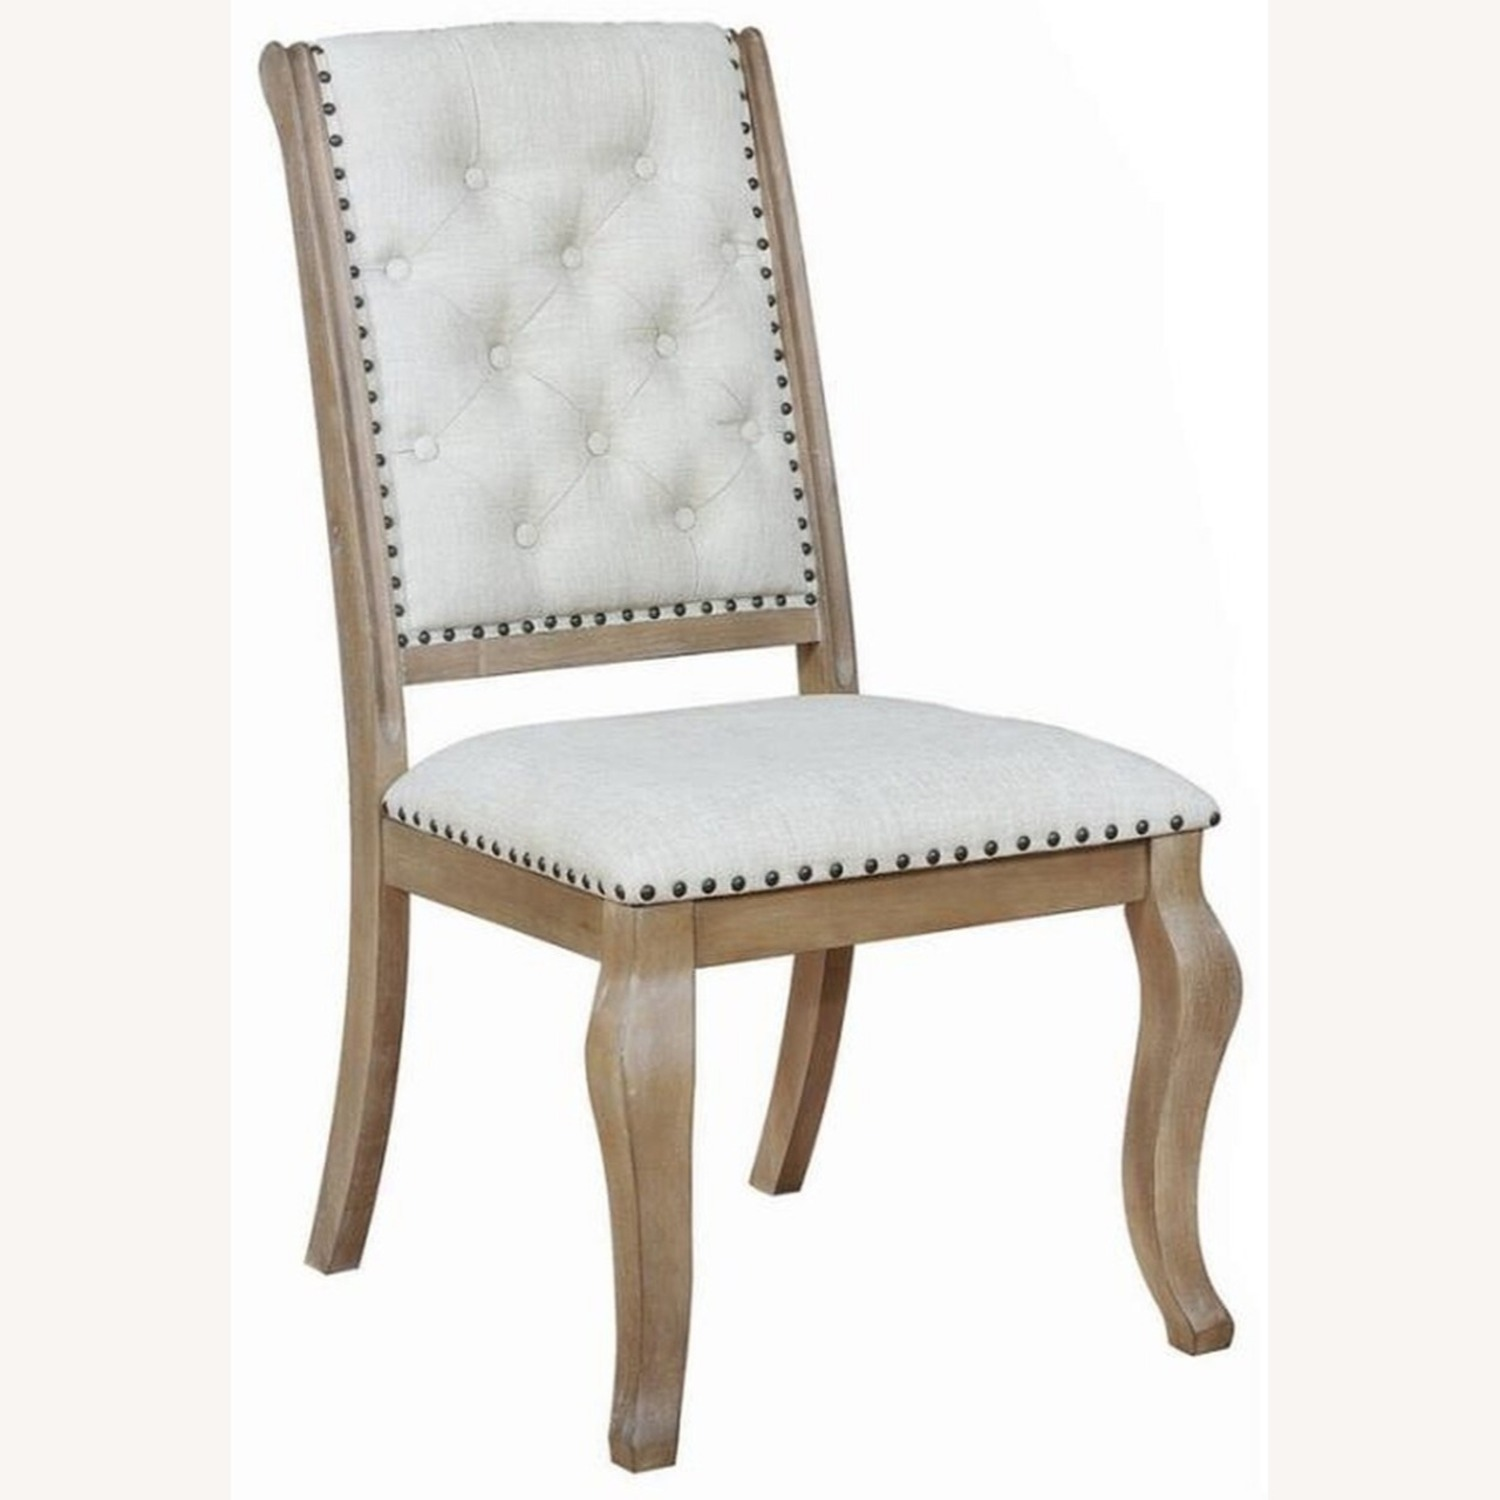 Side Chair In Barley Brown Finish - image-0